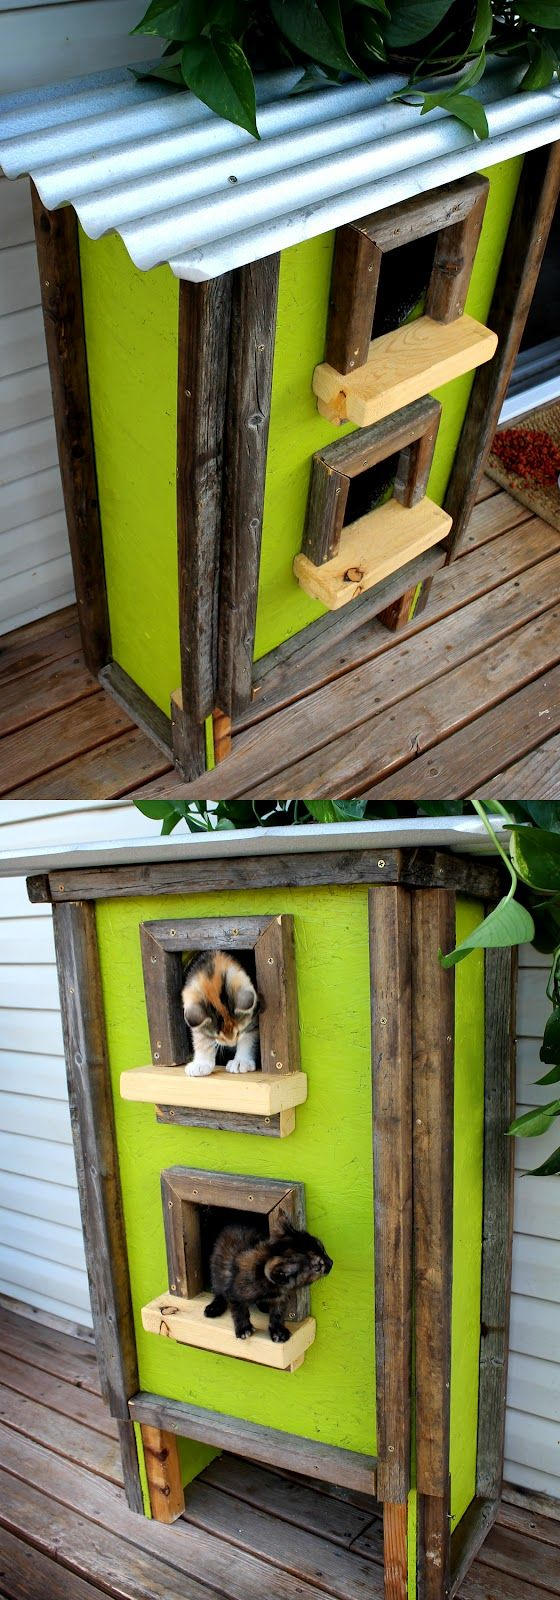 Customized Outdoor Cat House ... she doesn't give any how to instructions but we built one ourselves & had wood & the sheet metal roofing that I'd gotten off craigslist for free to make ours, we painted it the same color as our house to blend in and it has two levels, plexiglass windows & we insulated it with house insulation that we had left over sandwiched between the outside wall & the inside wall .......... #DIY #cathouse #cat #diypetprojects #wood #metalroofing #screws #carpet…